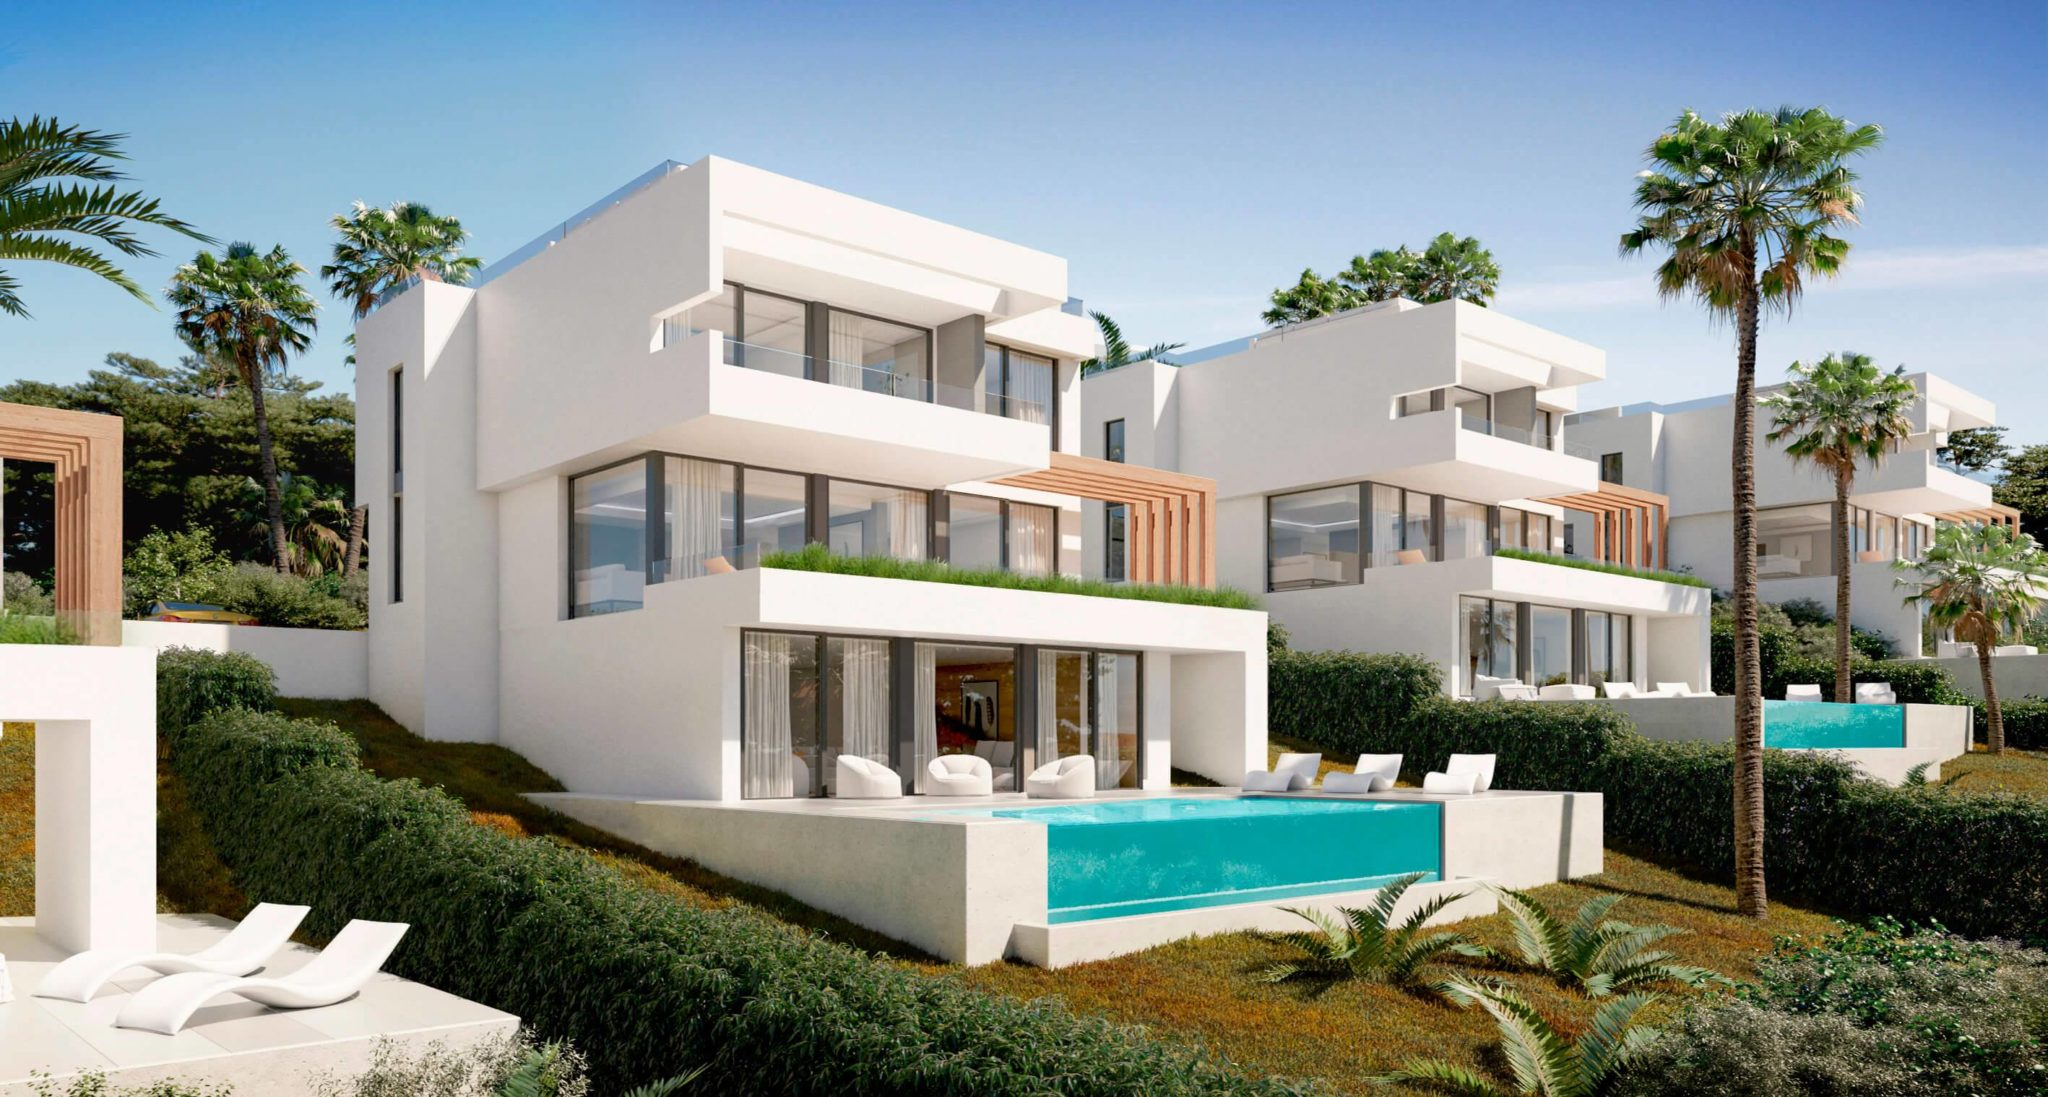 15 exclusive independent villas, with luxury qualities, Mijas costa